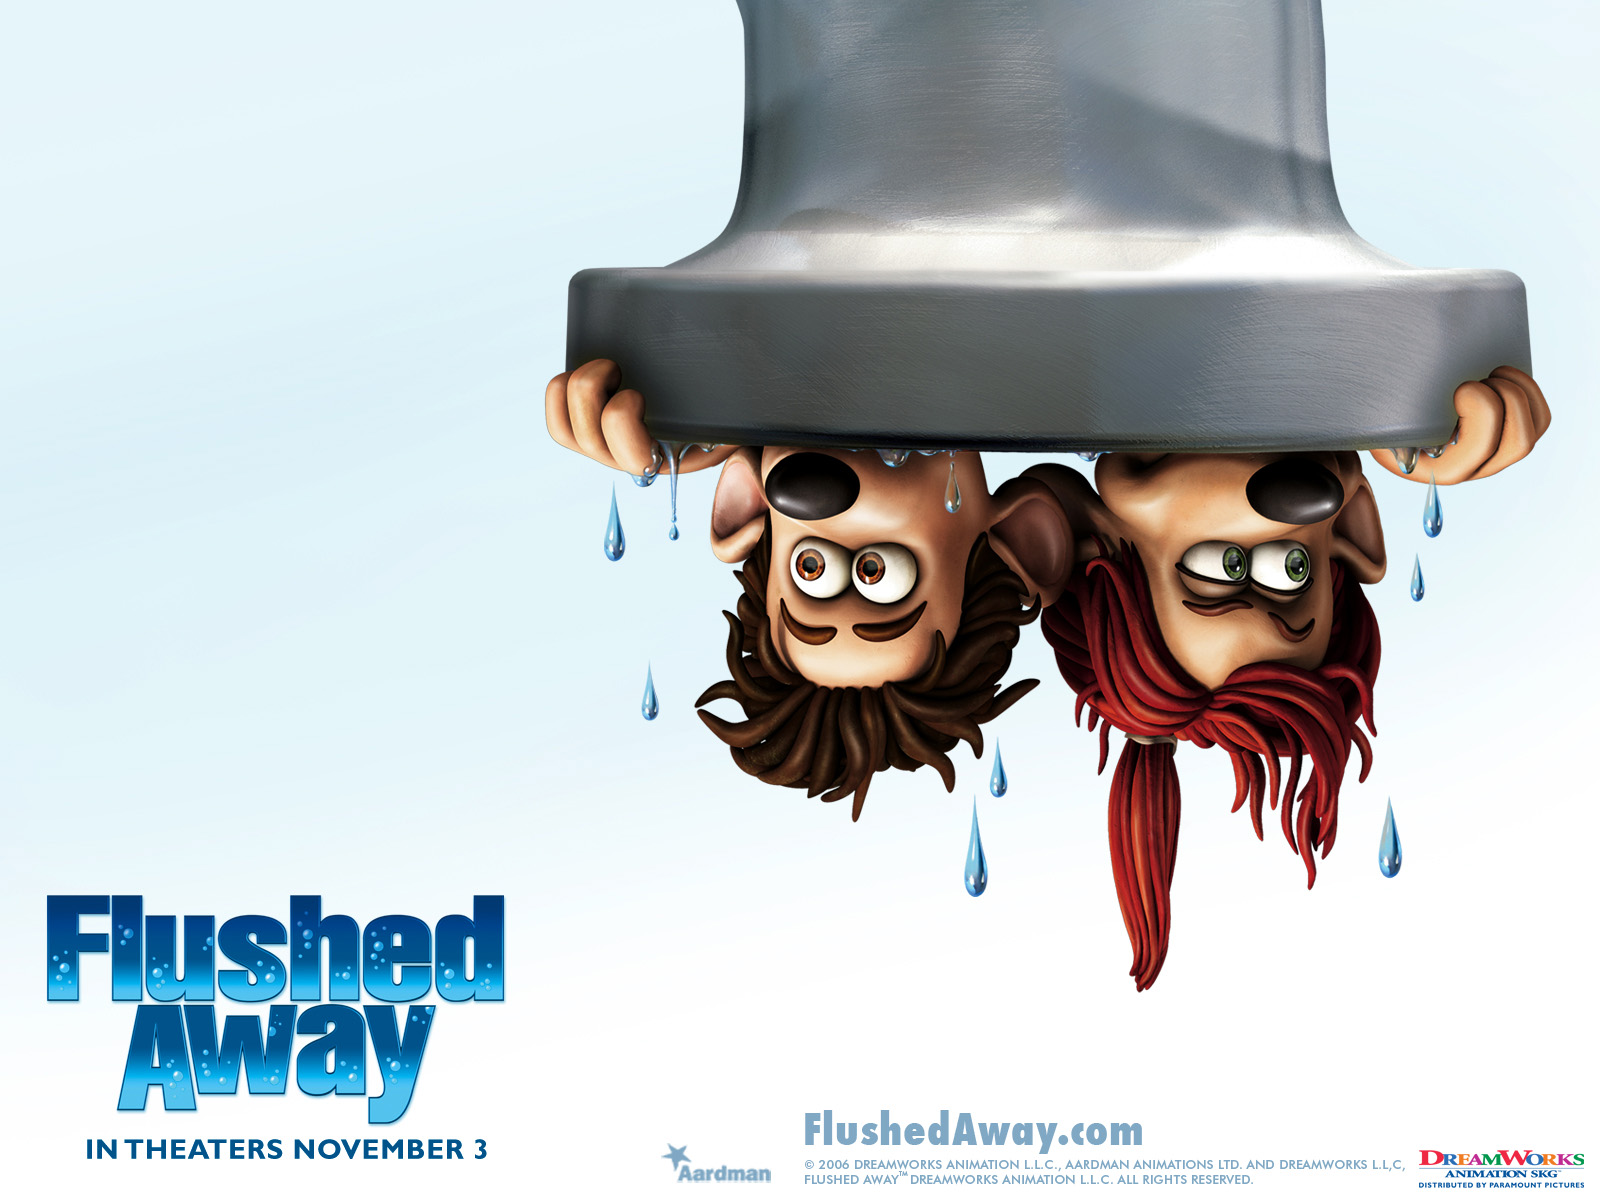 flushed_away_wallpaper_11